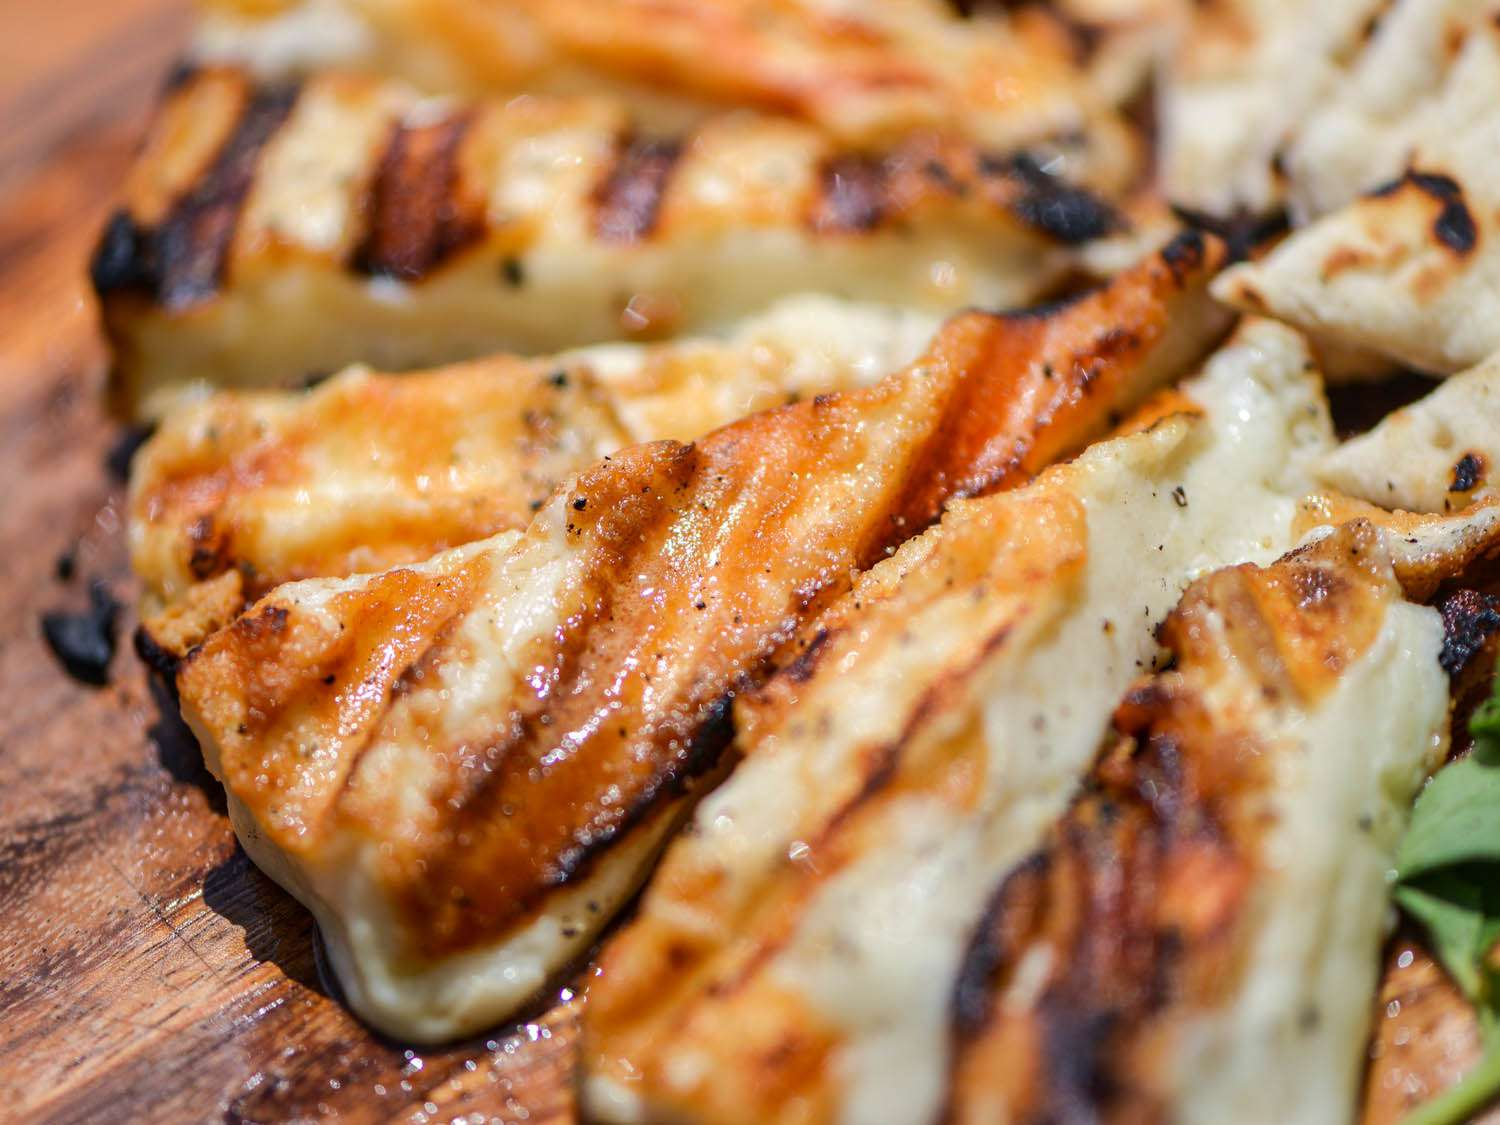 20140710-cheeses-you-can-grill-kefalotyri-finished-joshua-bousel.jpg